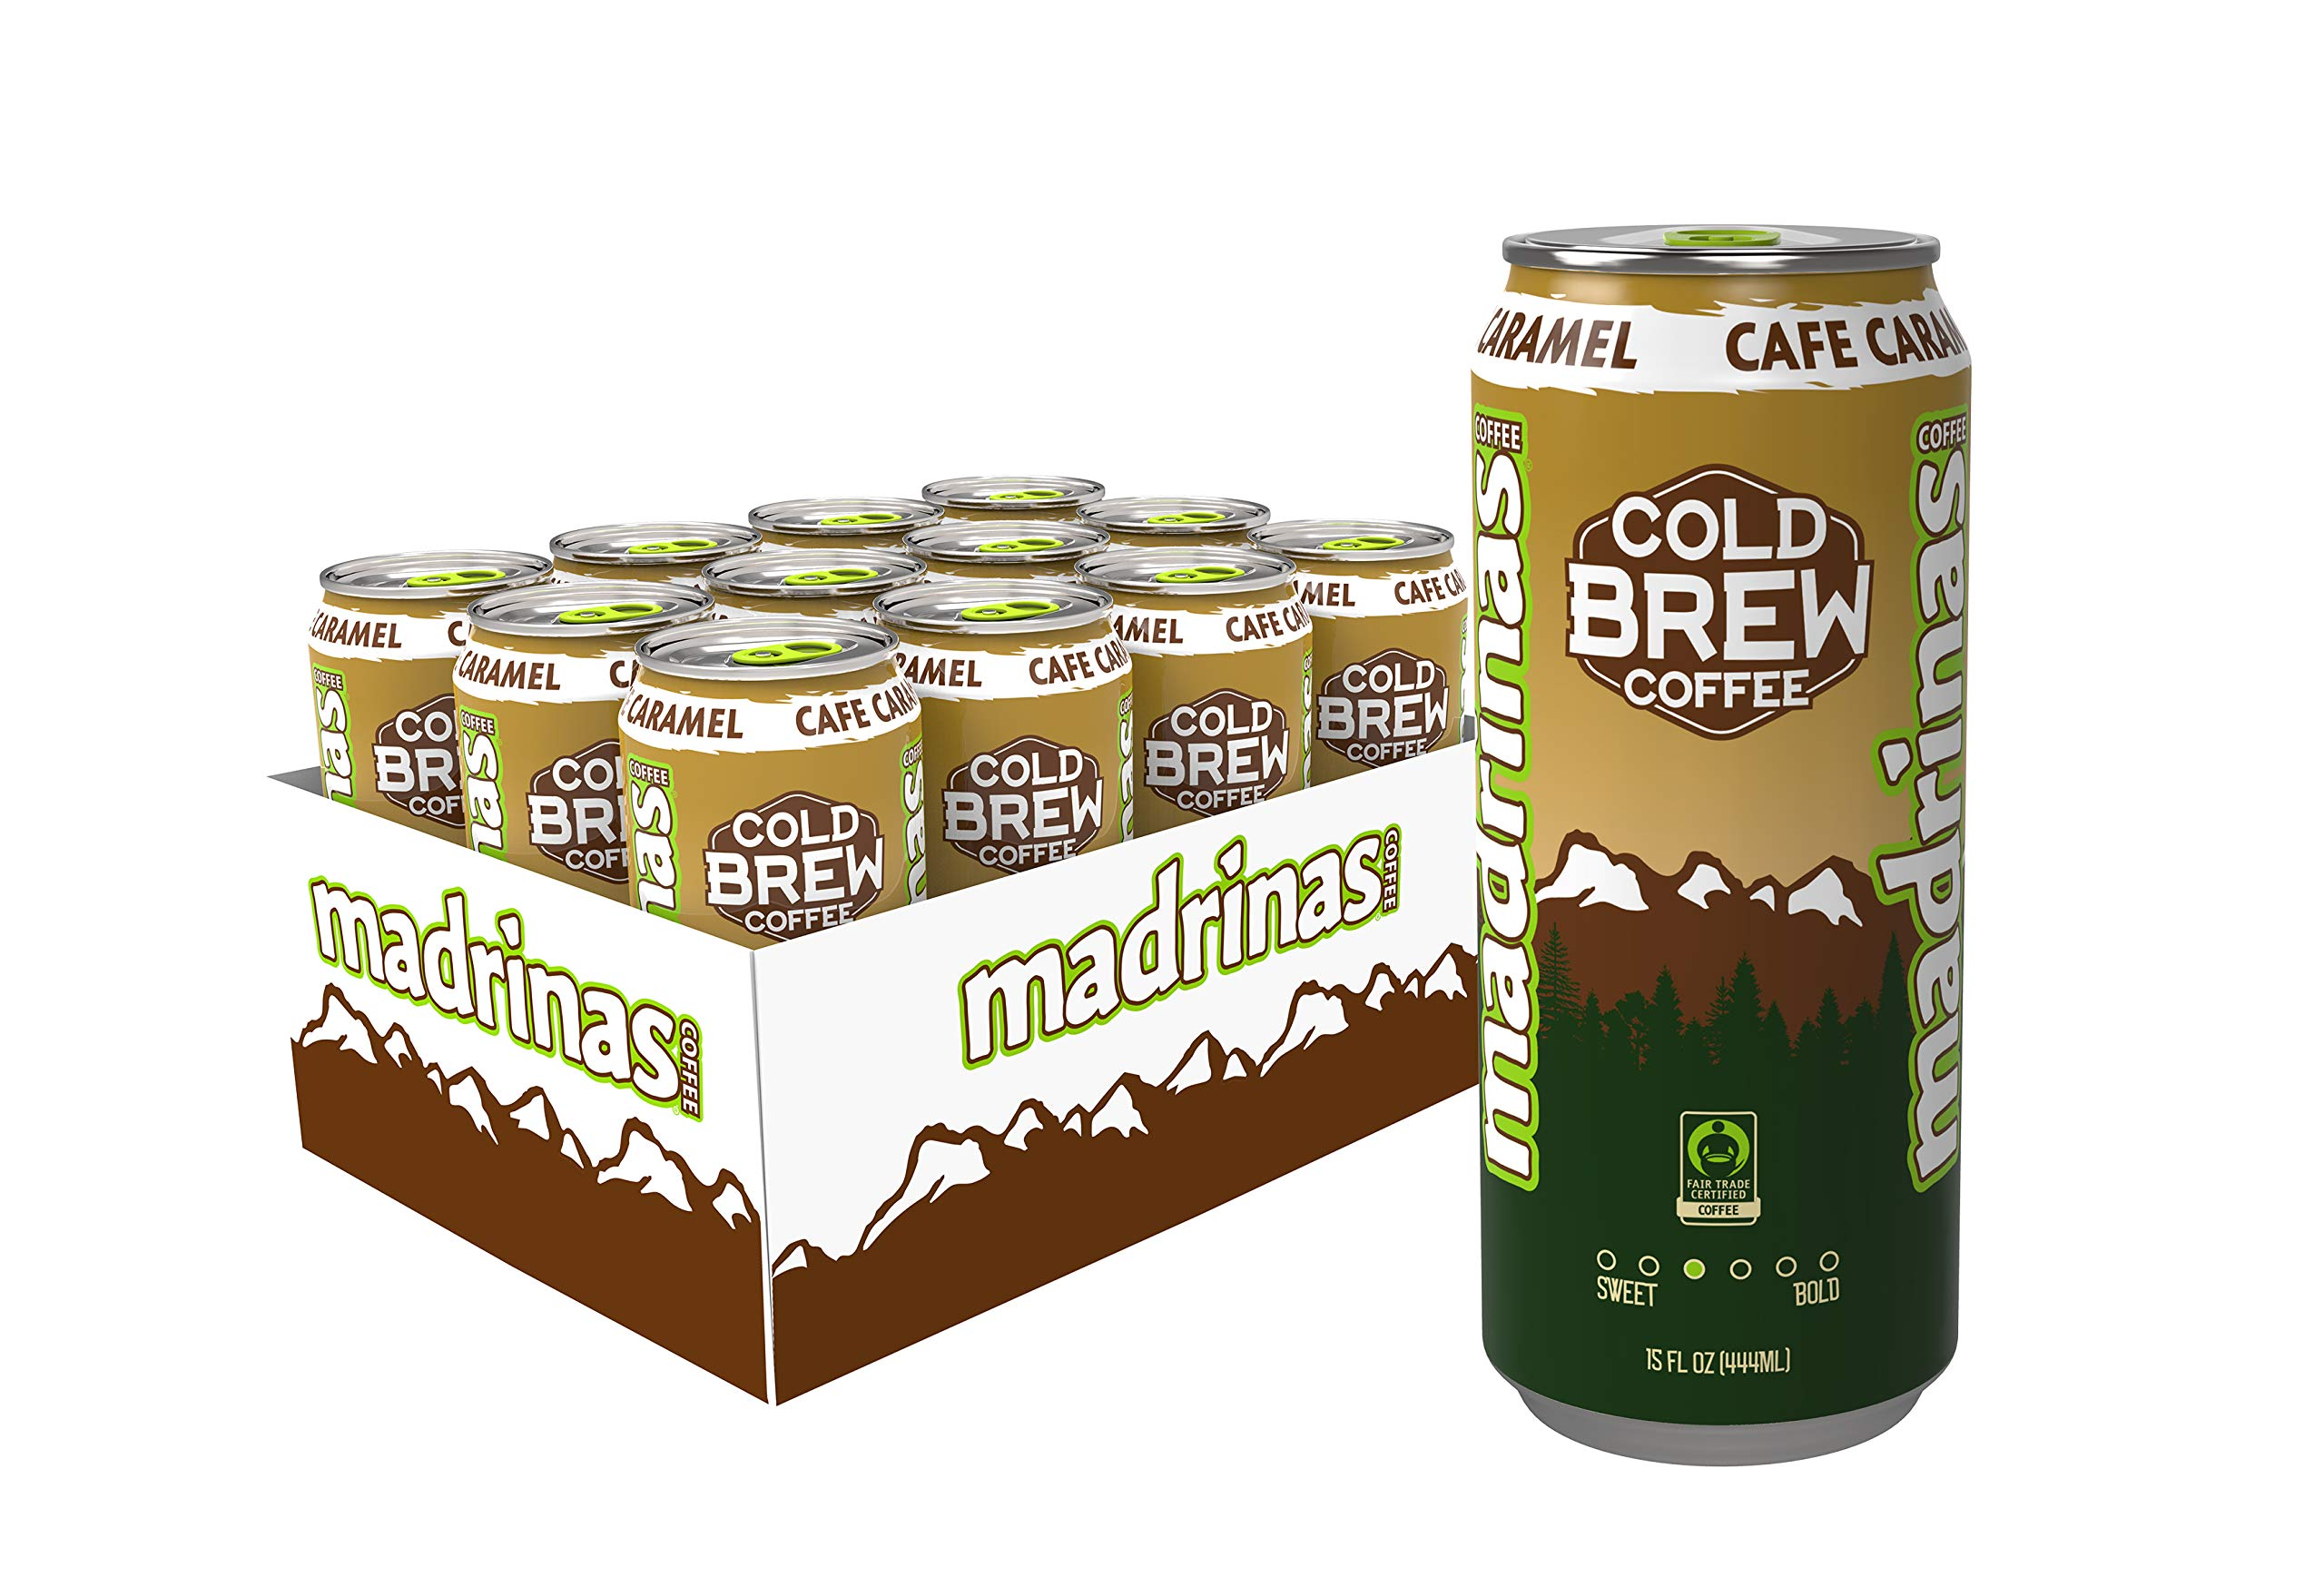 Madrinas Cafe Caramel Fair Trade Cold Brew Coffee, 15 Fl Oz (Pack Of 12) by Madrinas Coffee